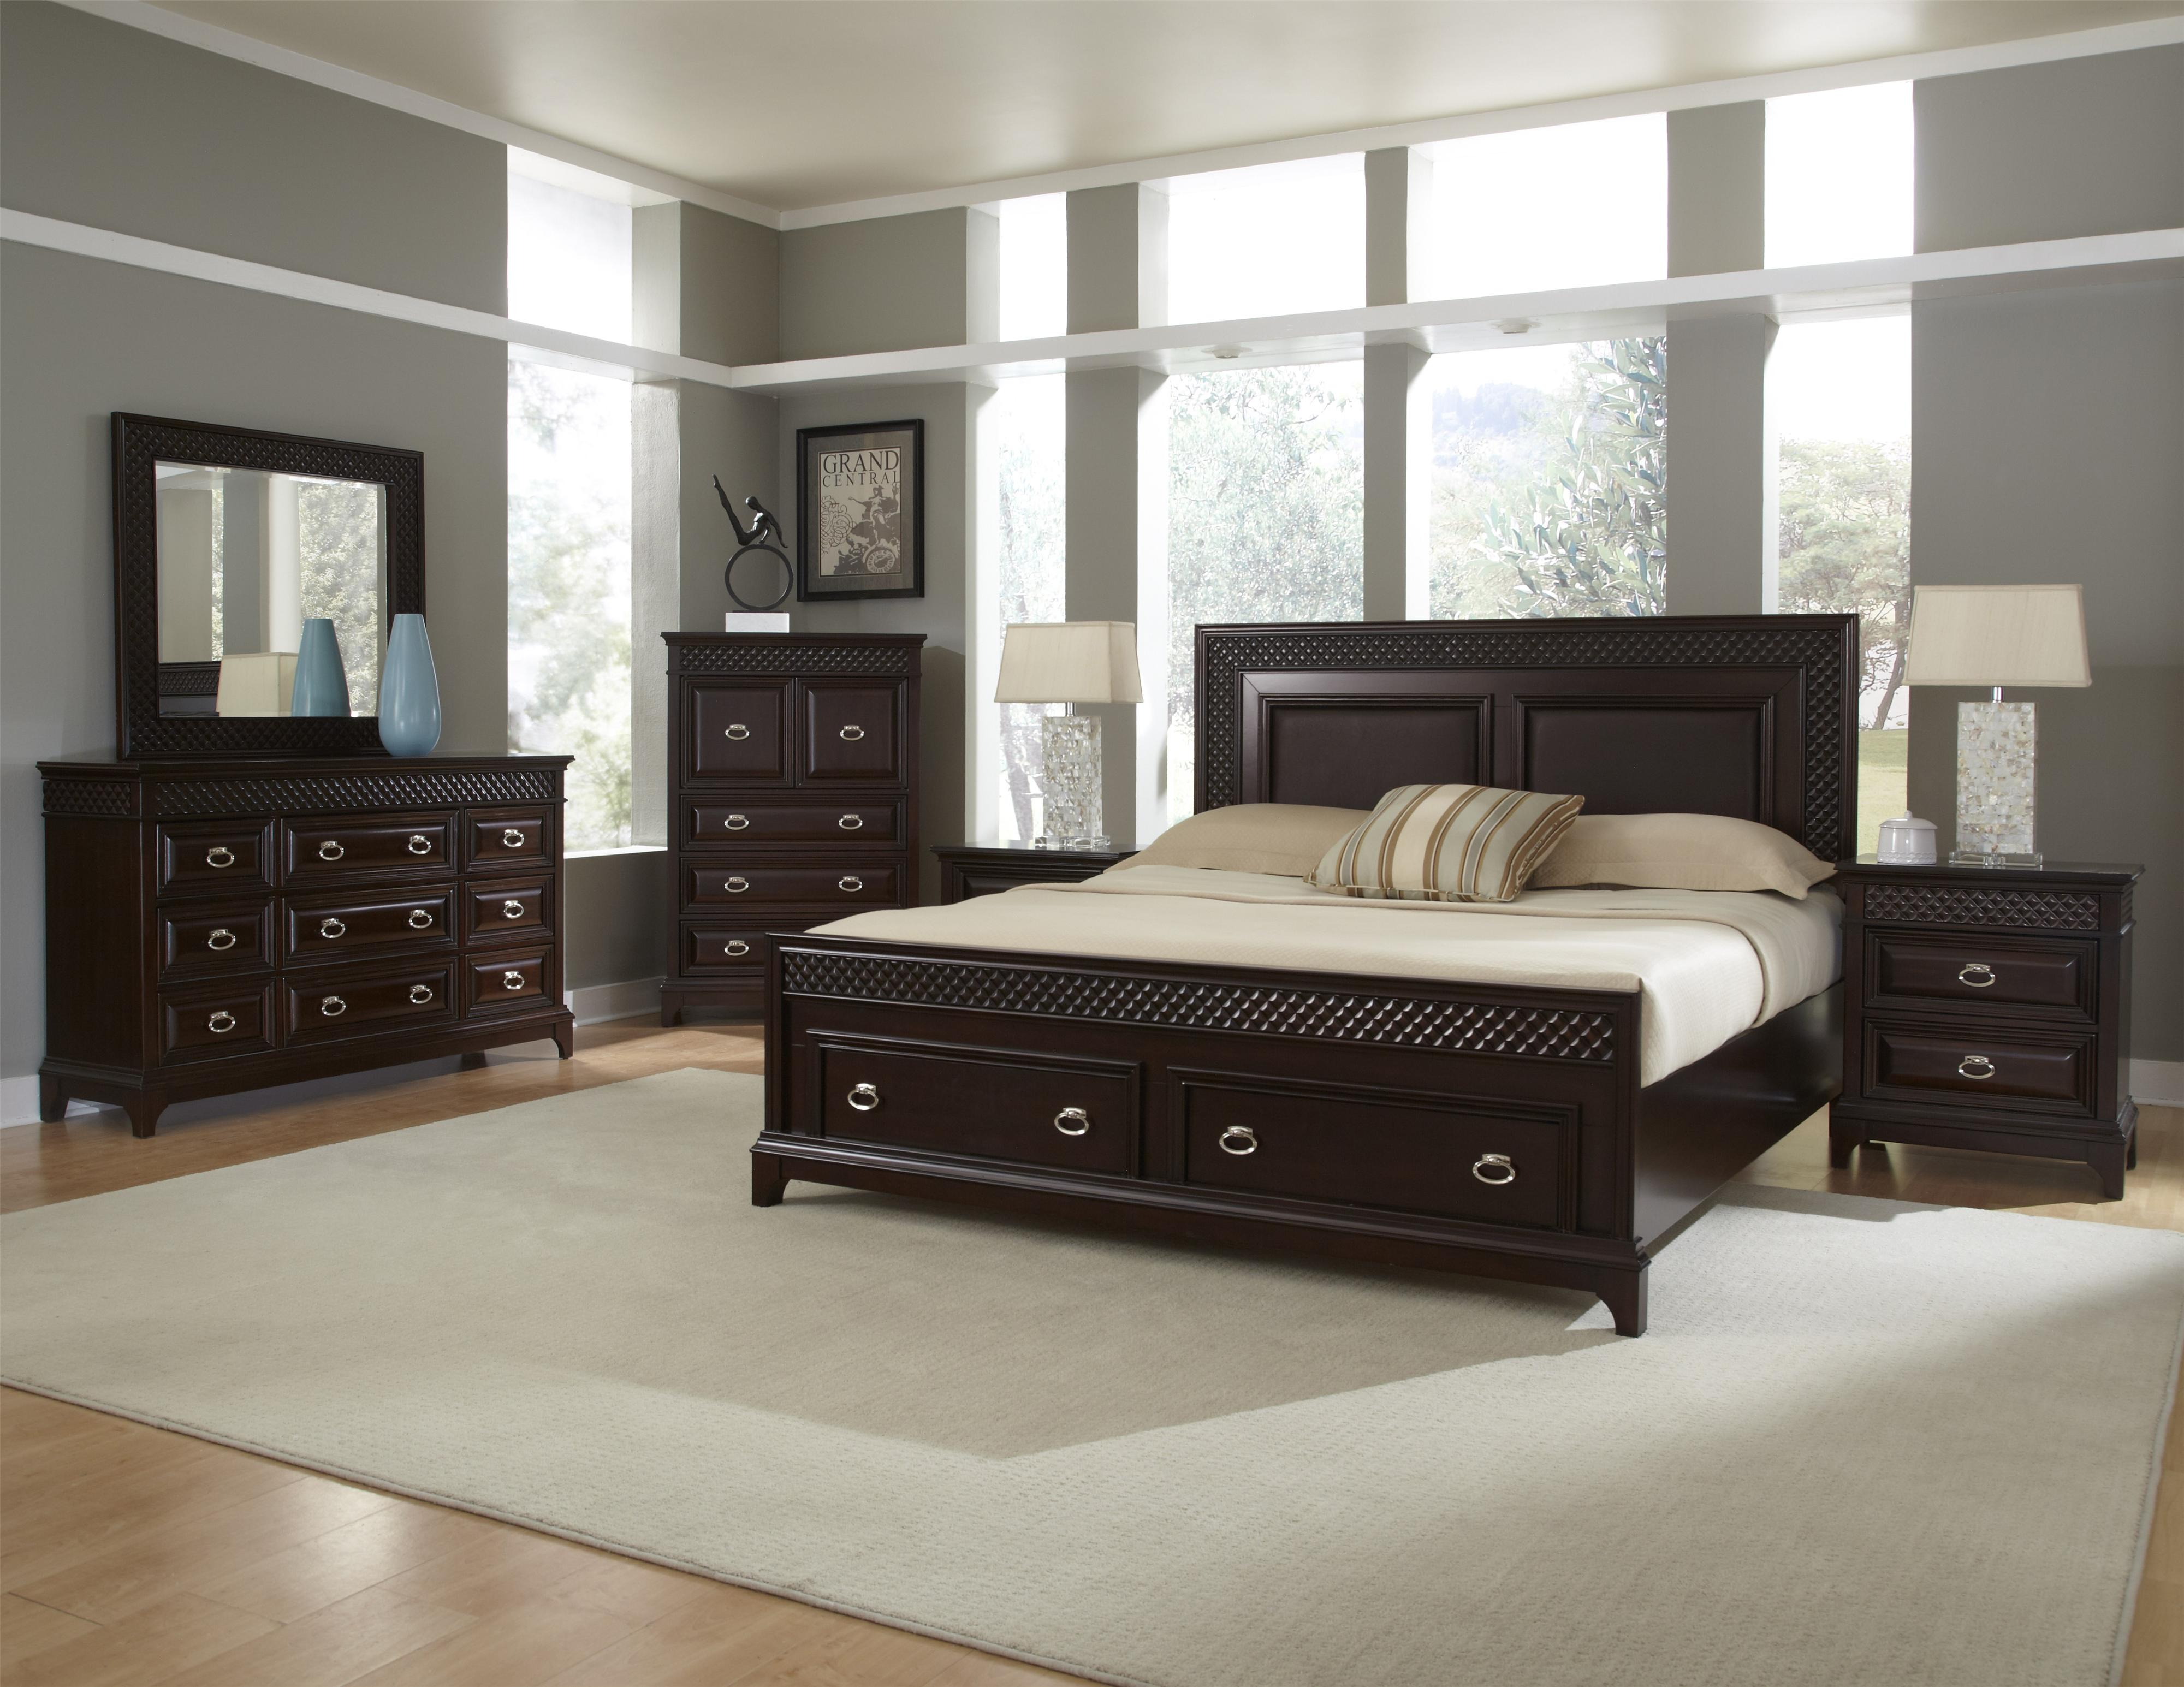 Najarian Sonoma Bedroom Group - Item Number: SON CK Bedroom Group 1